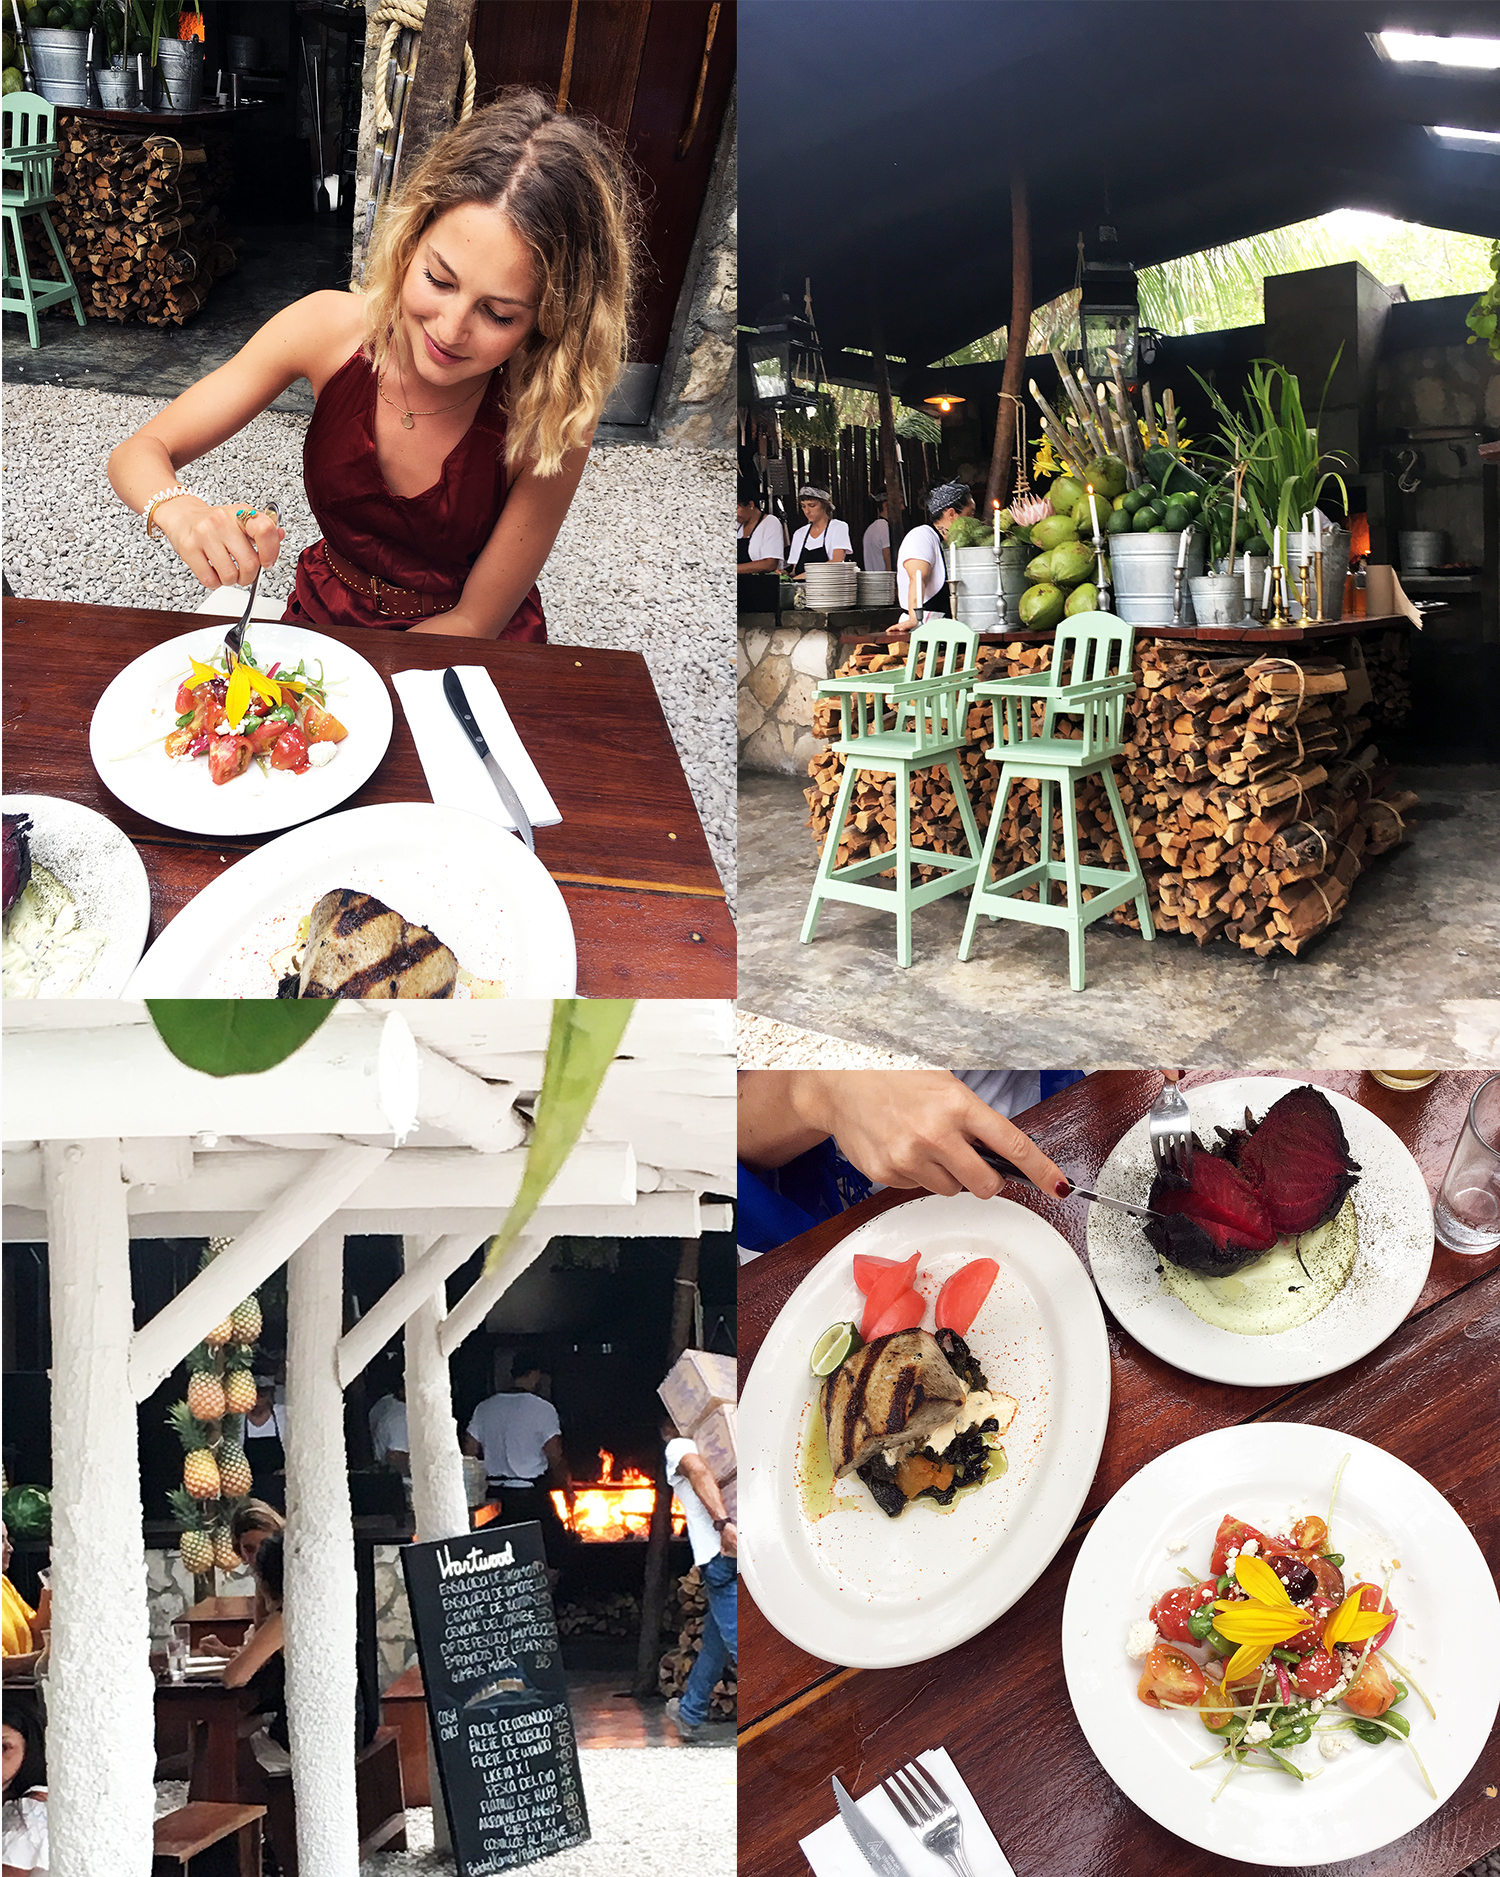 tess ward, mexico, travel, howlita, tulum, del cielo, hartwood, food, tacos, beetroot, avocado, creme, bar, cocktails, dinner